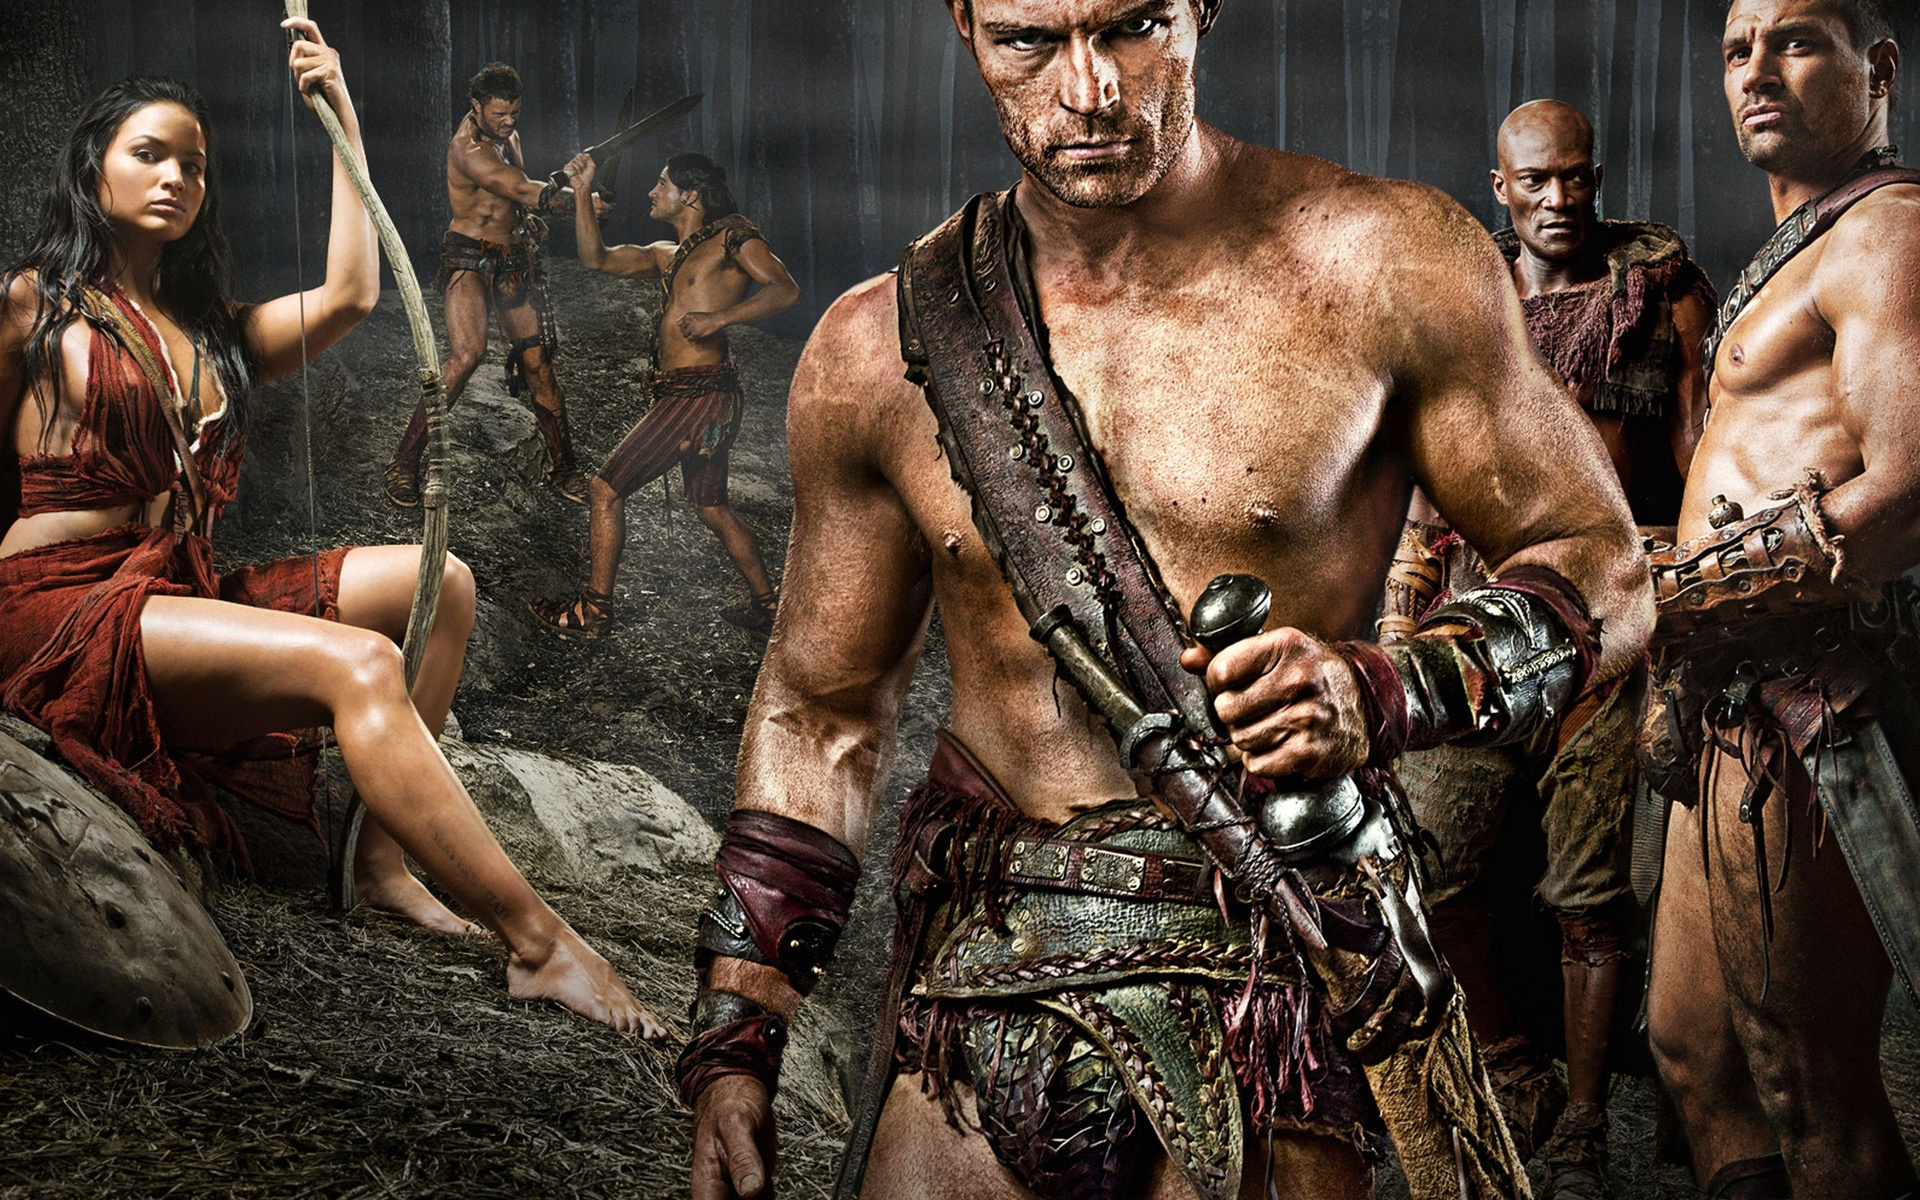 Spartacus Poster for 1920 x 1200 widescreen resolution